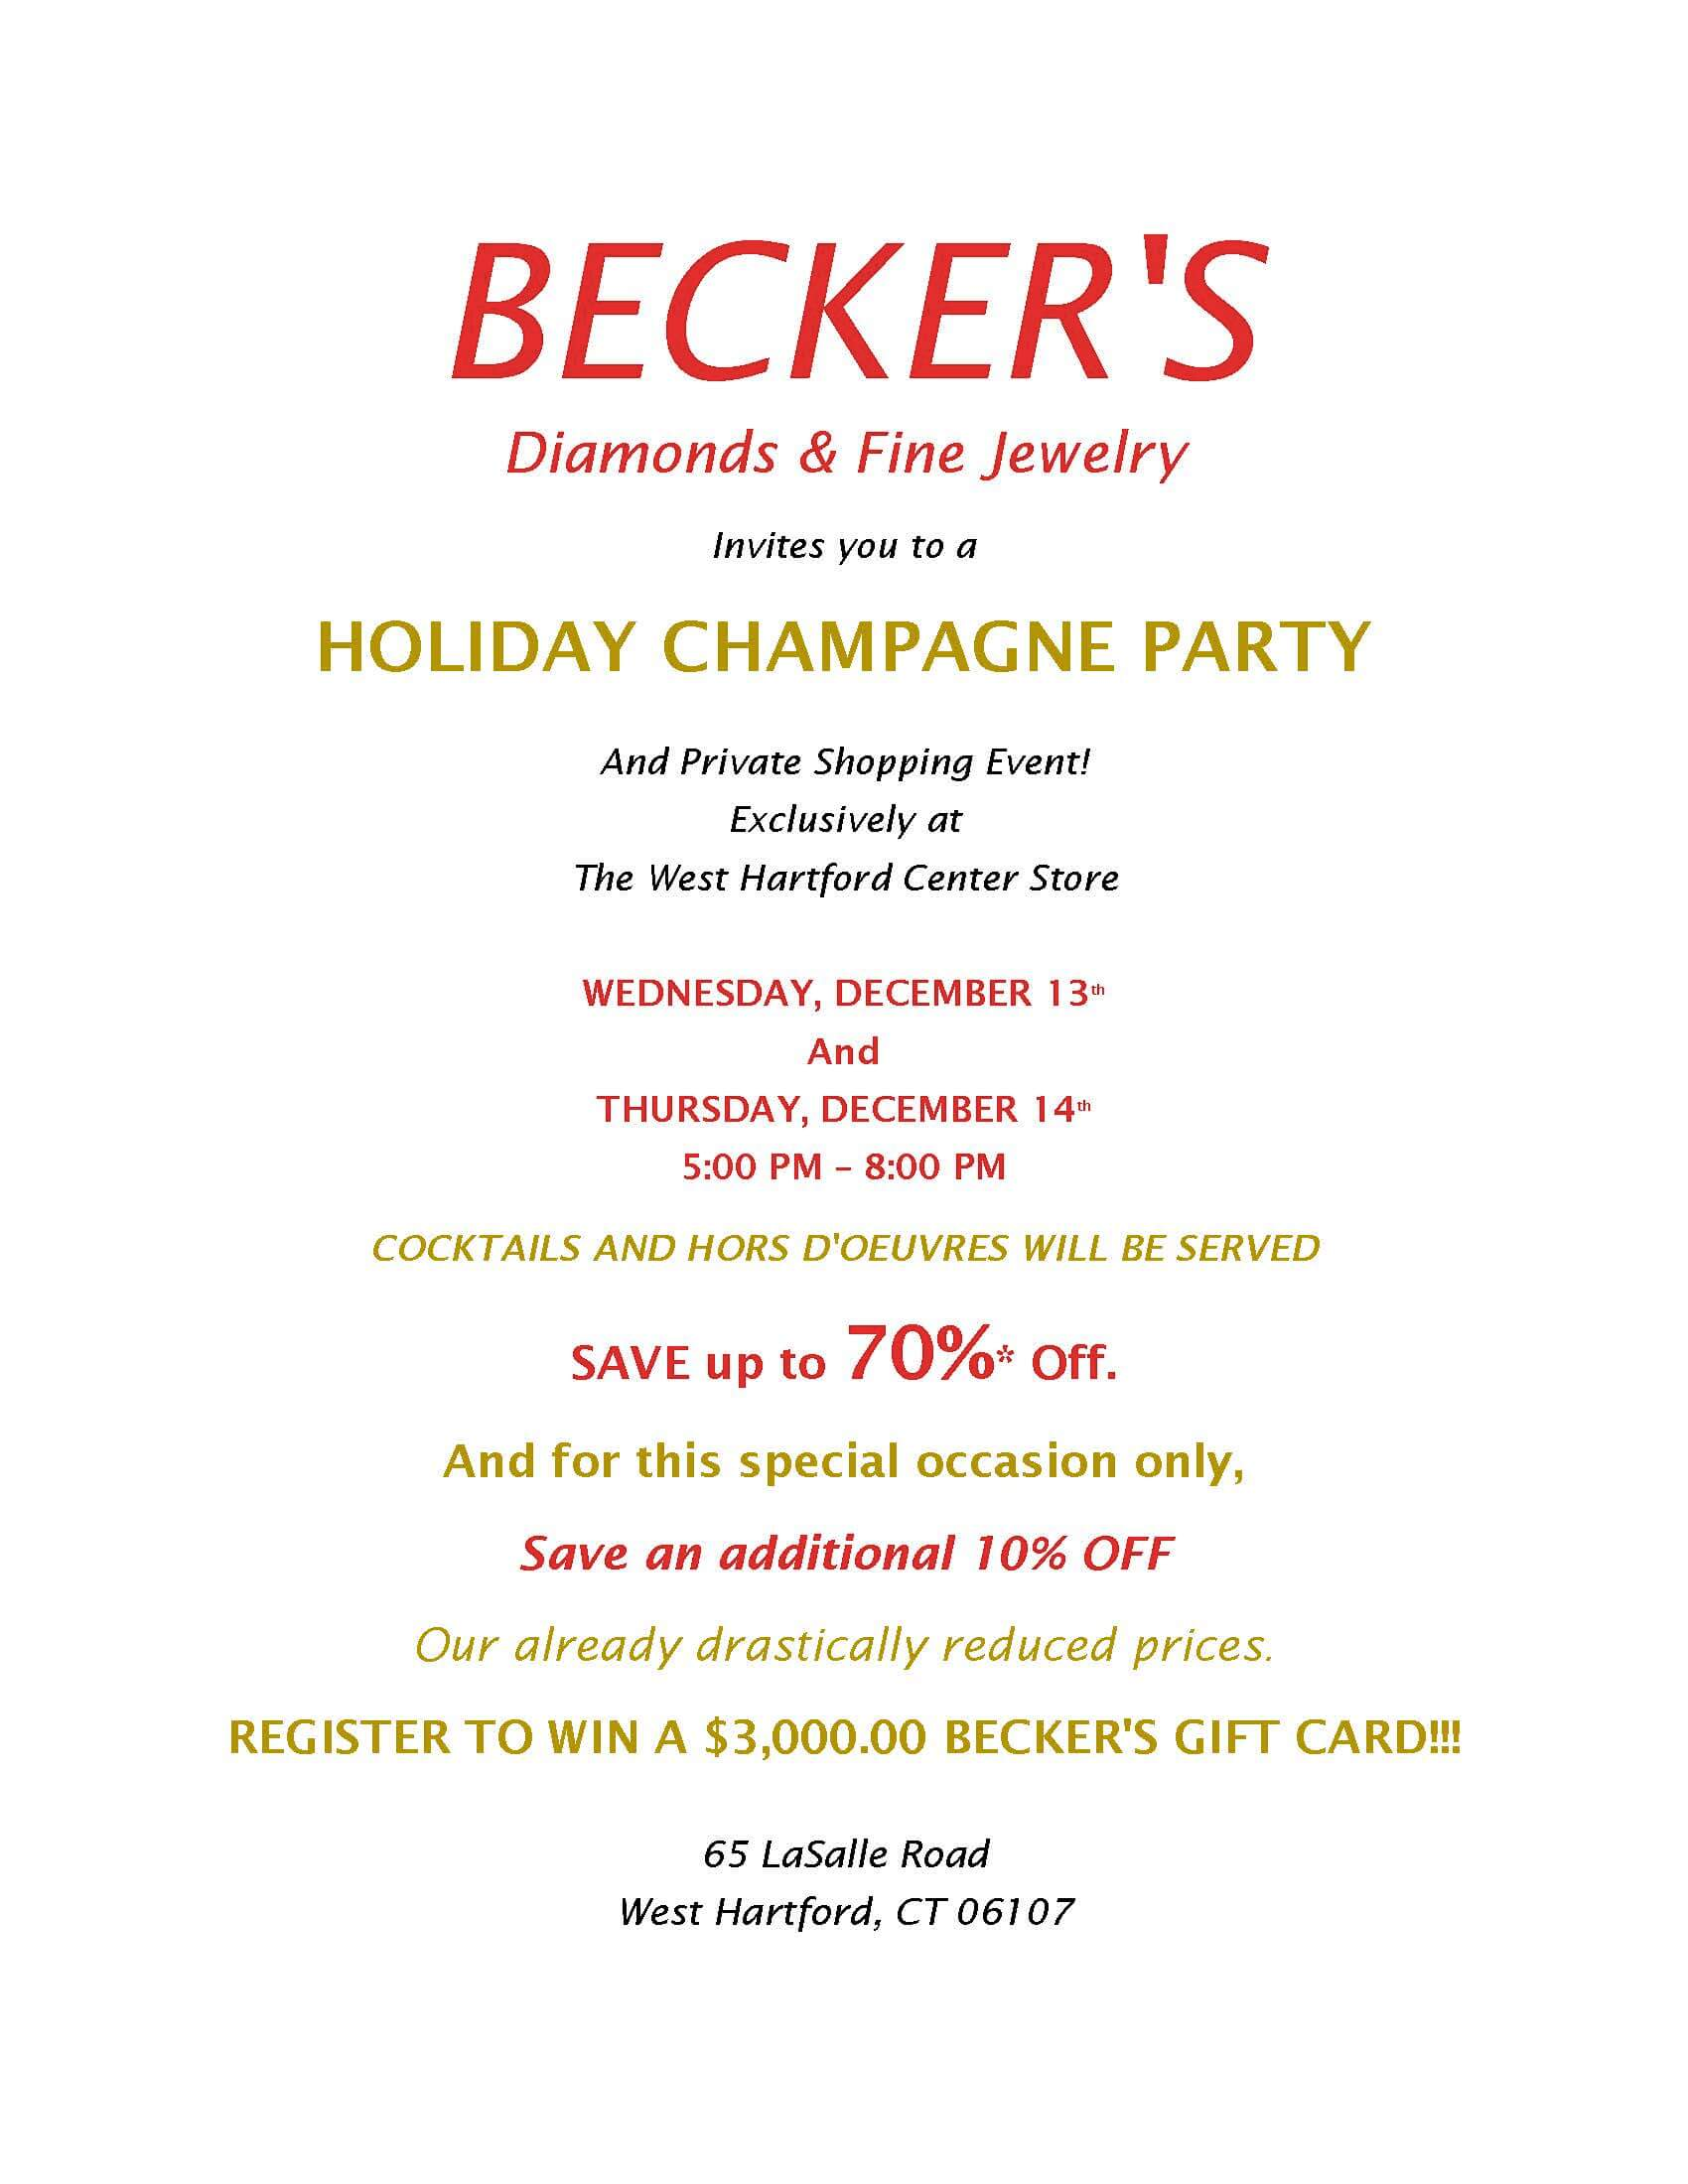 west hartford holiday champagne party